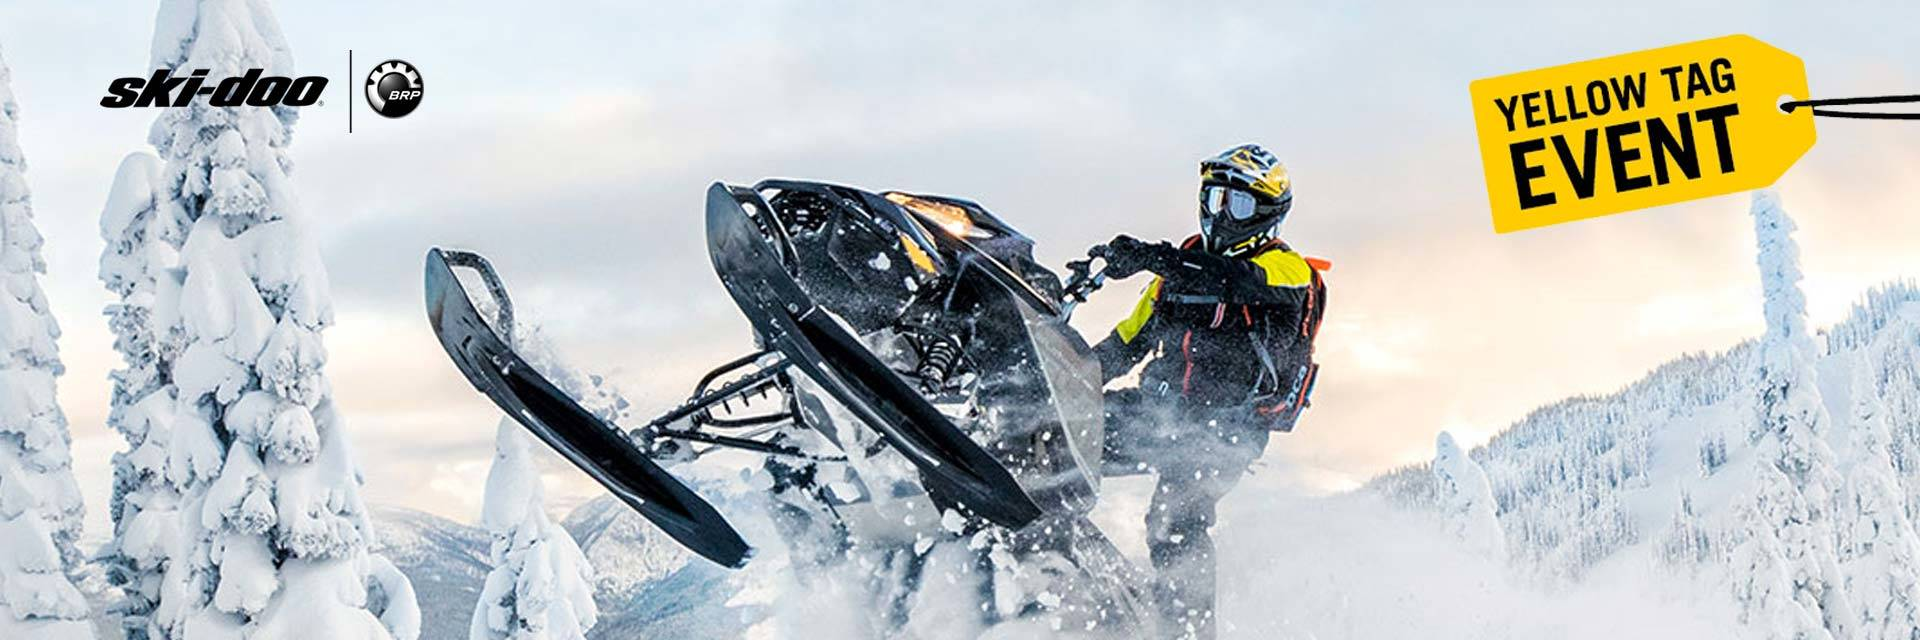 Ski-Doo - Yellow Tag Sales Event